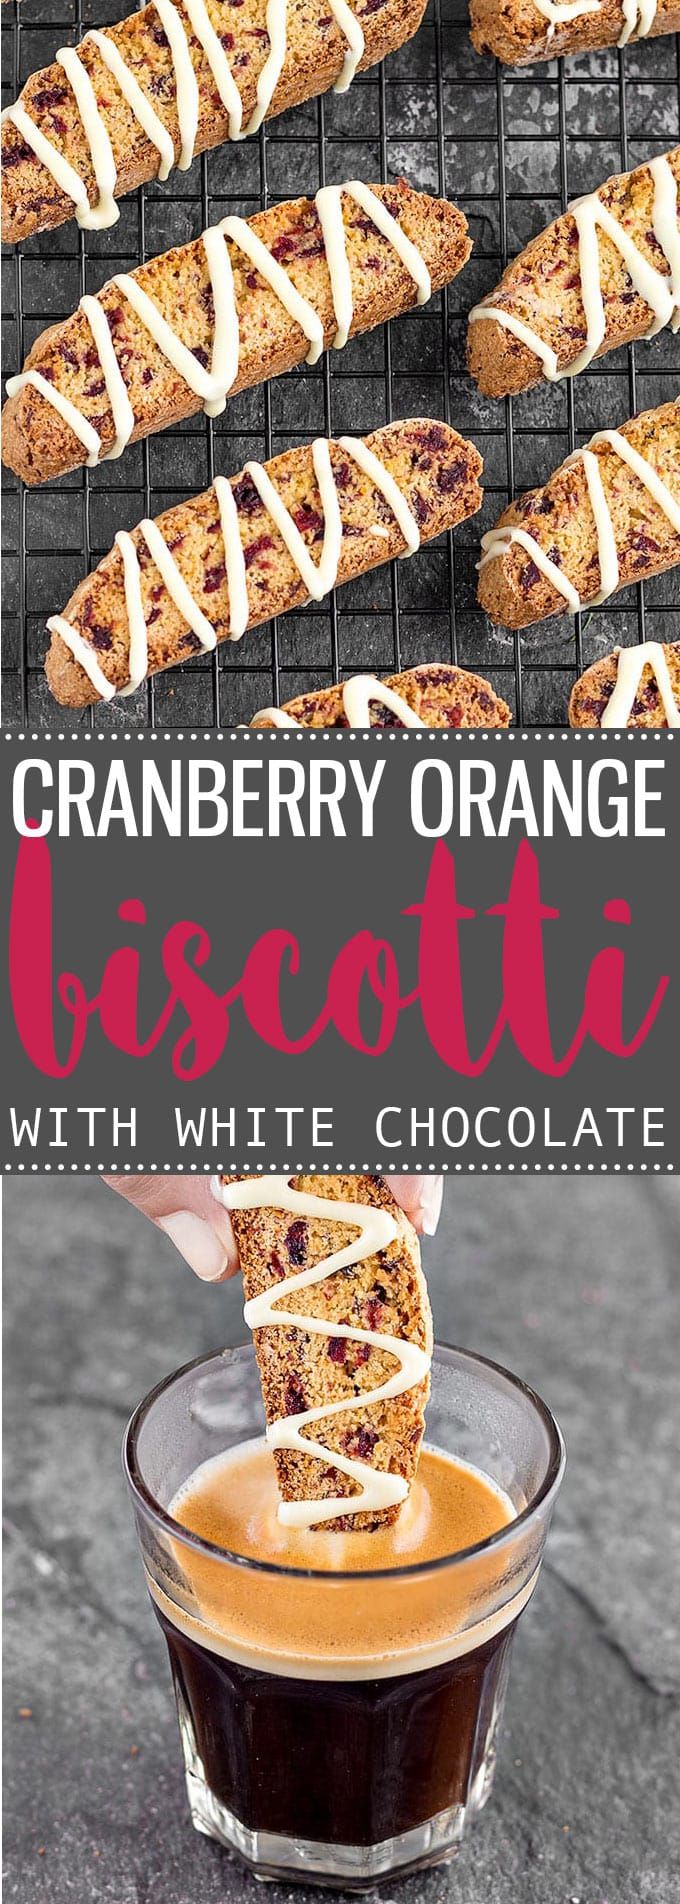 These crunchy Cranberry Orange Biscotti drizzled with white chocolate make a delightful and delicious holiday gift!